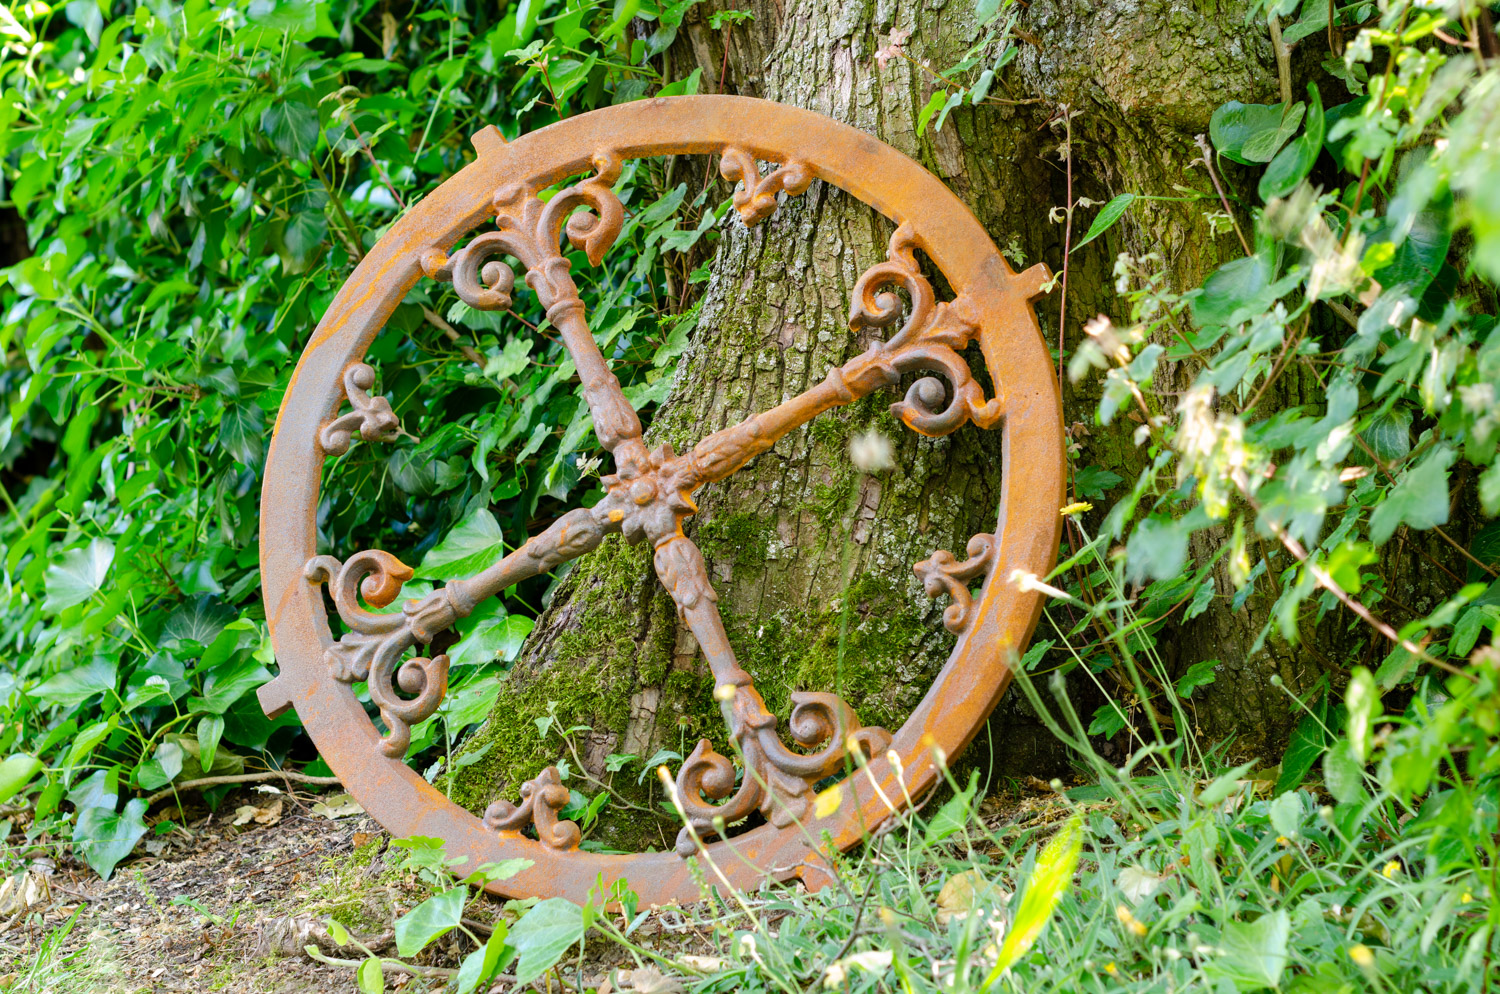 a4 Barn window frame round in an antique style cast iron 57cm